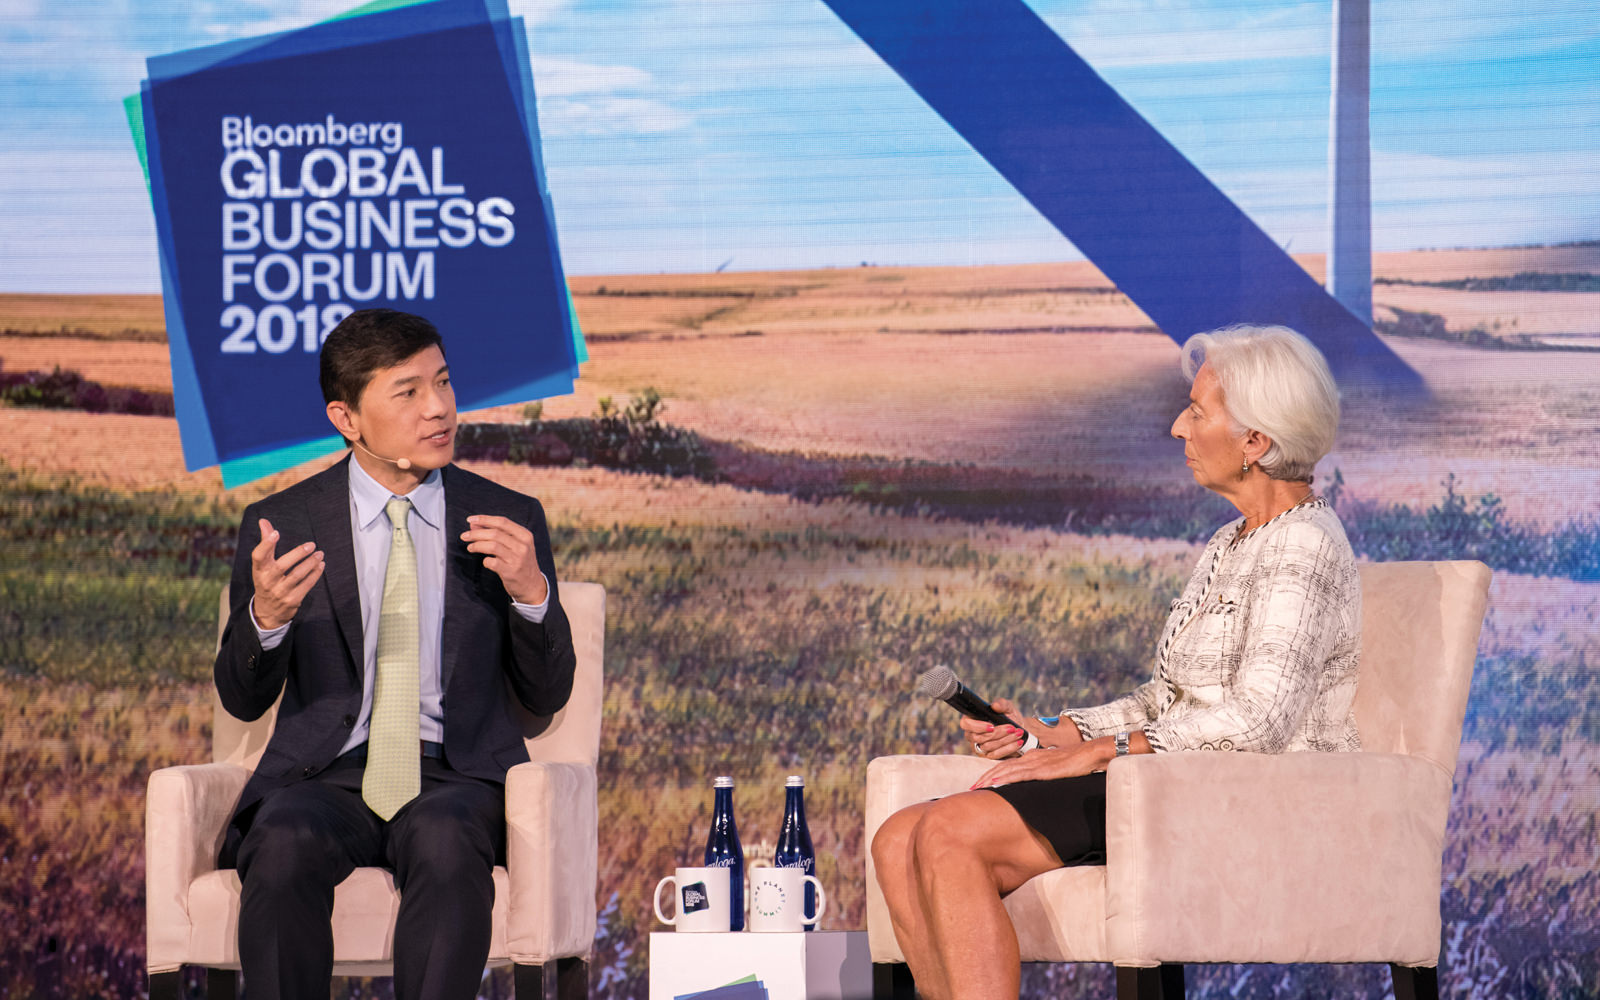 Robin Li, CEO of Baidu, and Christine Lagarde, Managing Director of the International Monetary Fund, discuss how technology impacts economic growth at the Bloomberg Global Business Forum in New York City.